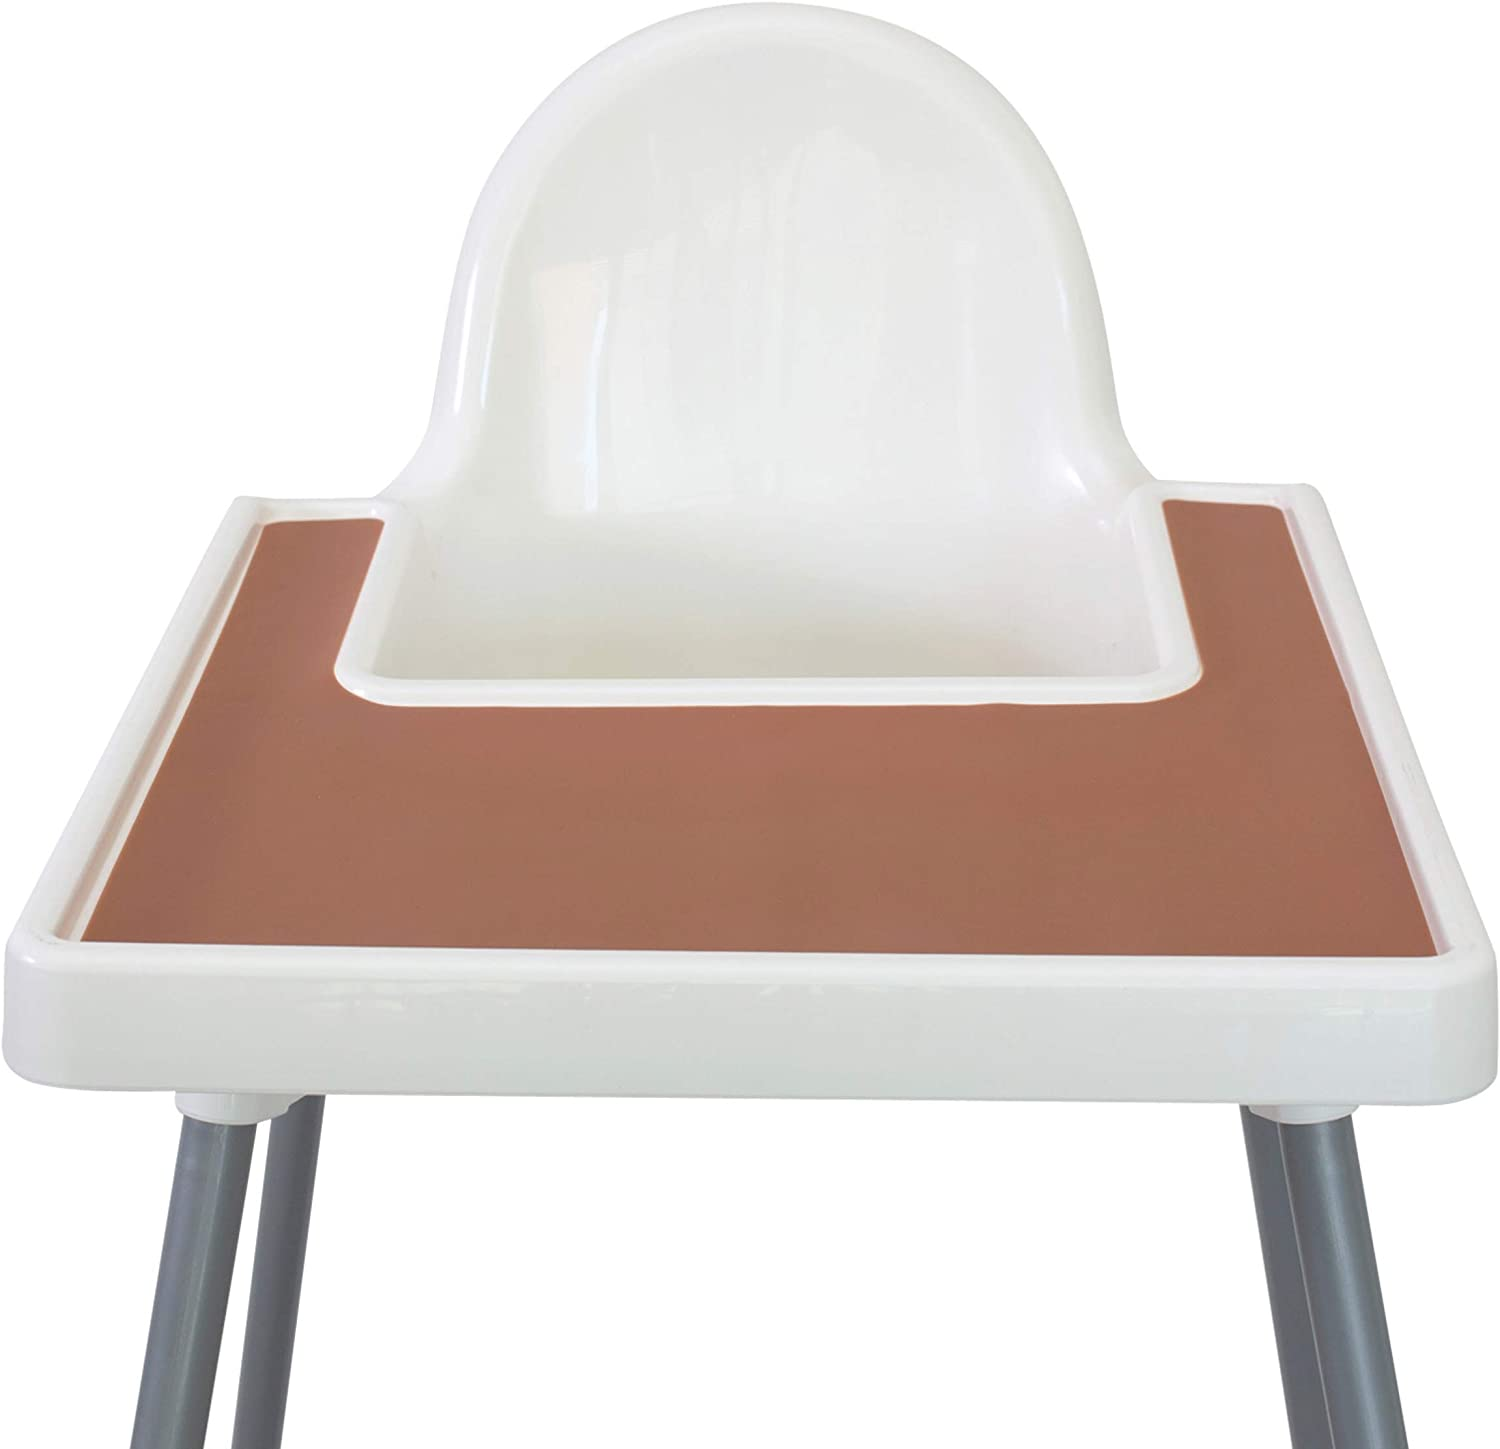 Mango Co. IKEA High Chair Placemat for Antilop Baby High Chair - BPA Free, Dishwasher Safe, Silicone Placemats - Finger Foods Placemat for Toddler and Baby (Clay Brown)